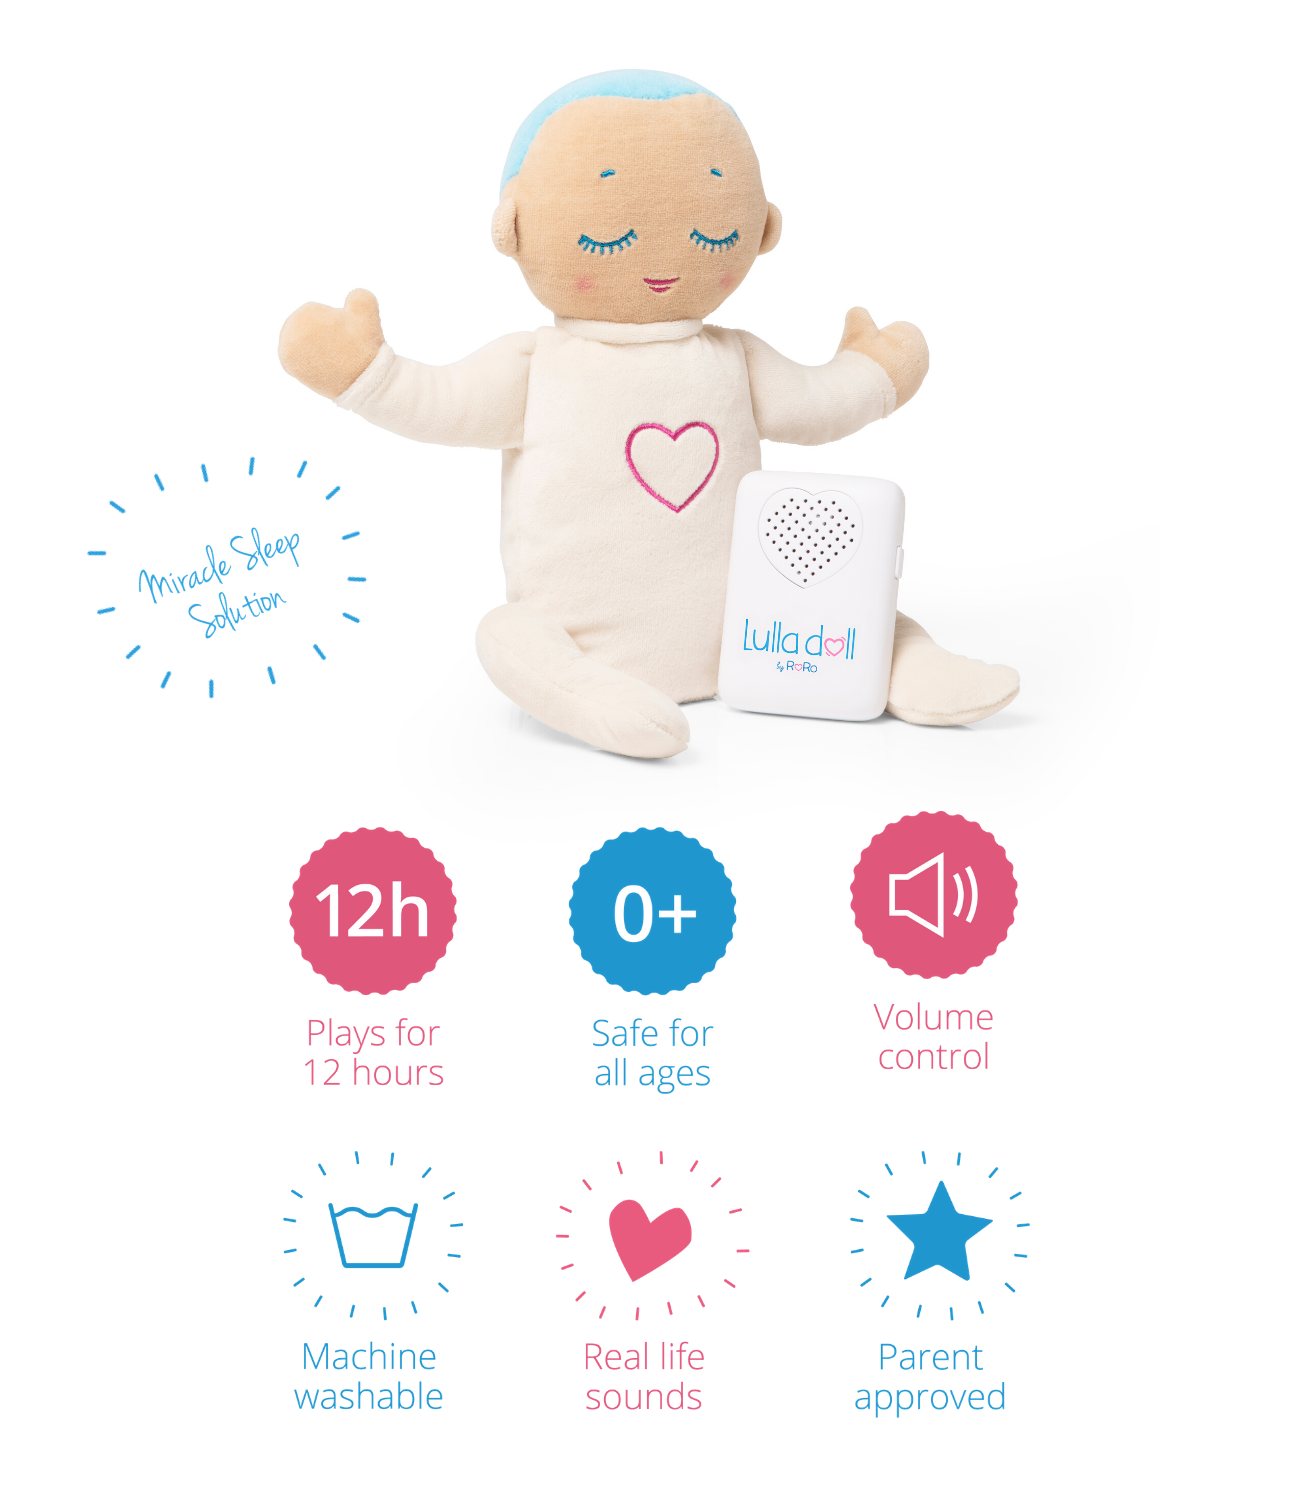 Lulla doll is the best sleep aid for babies